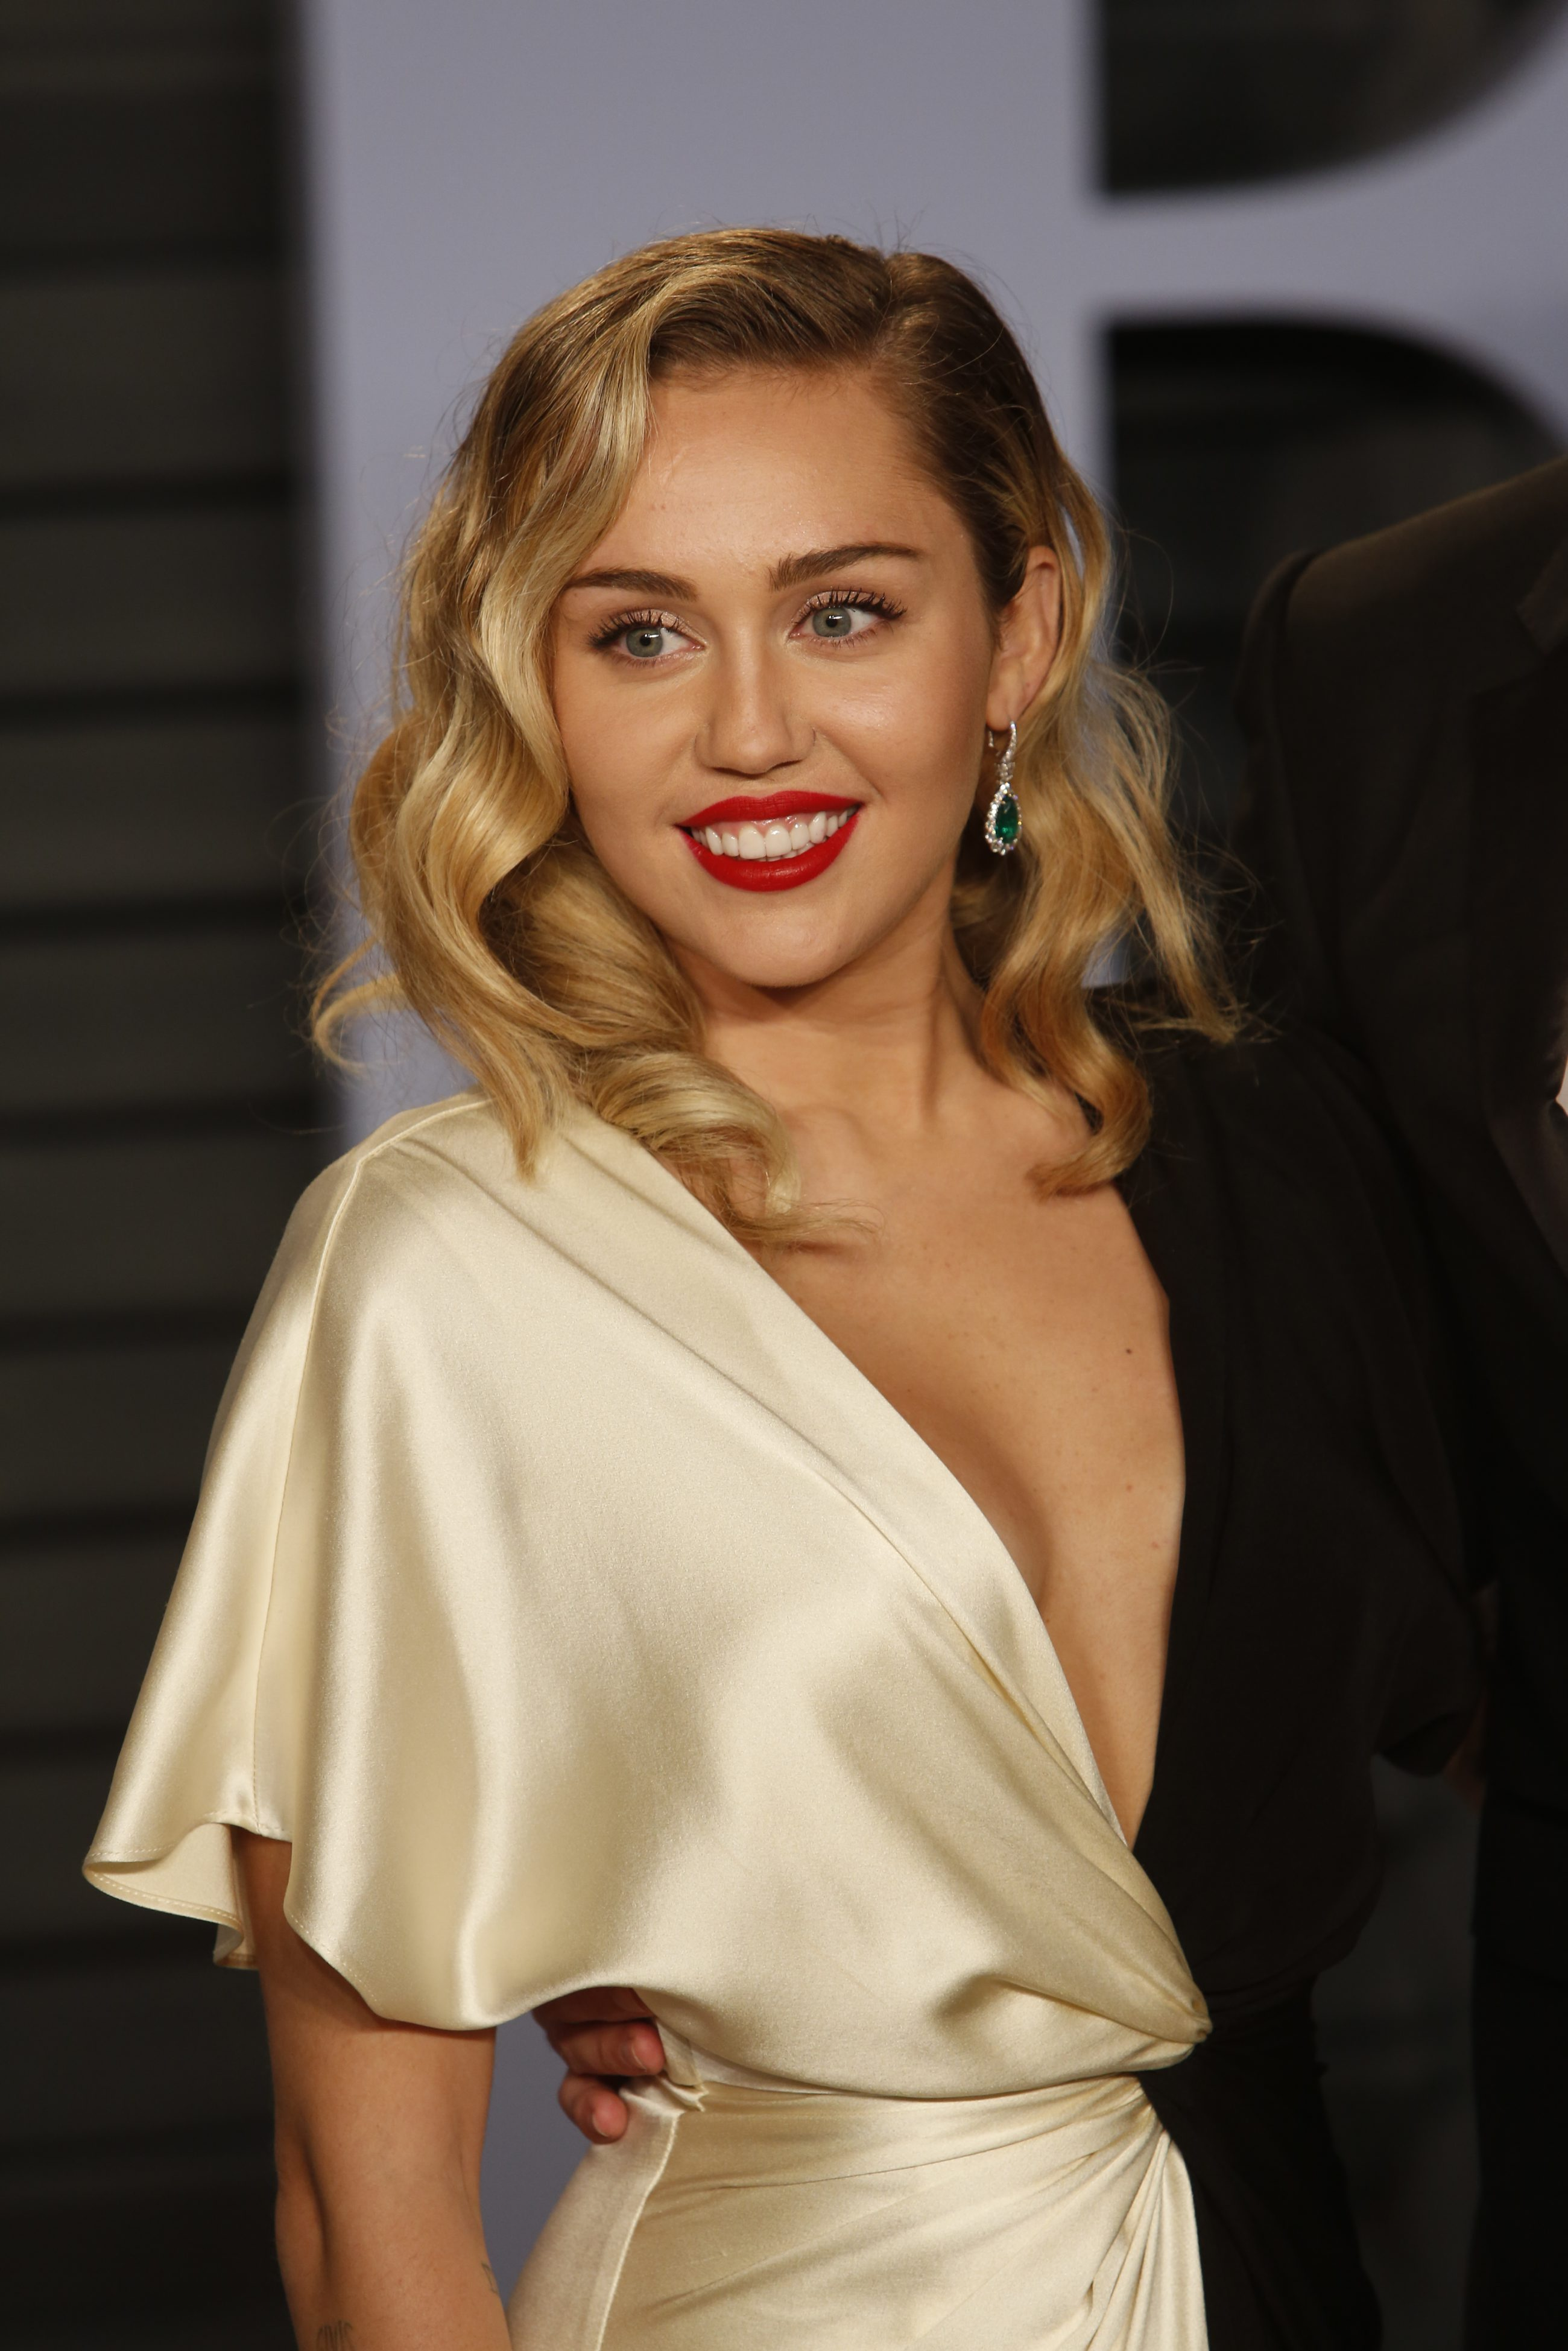 Miley Cyrus 2018 Vanity Fair Oscar Party 5 - Satiny Miley Cyrus